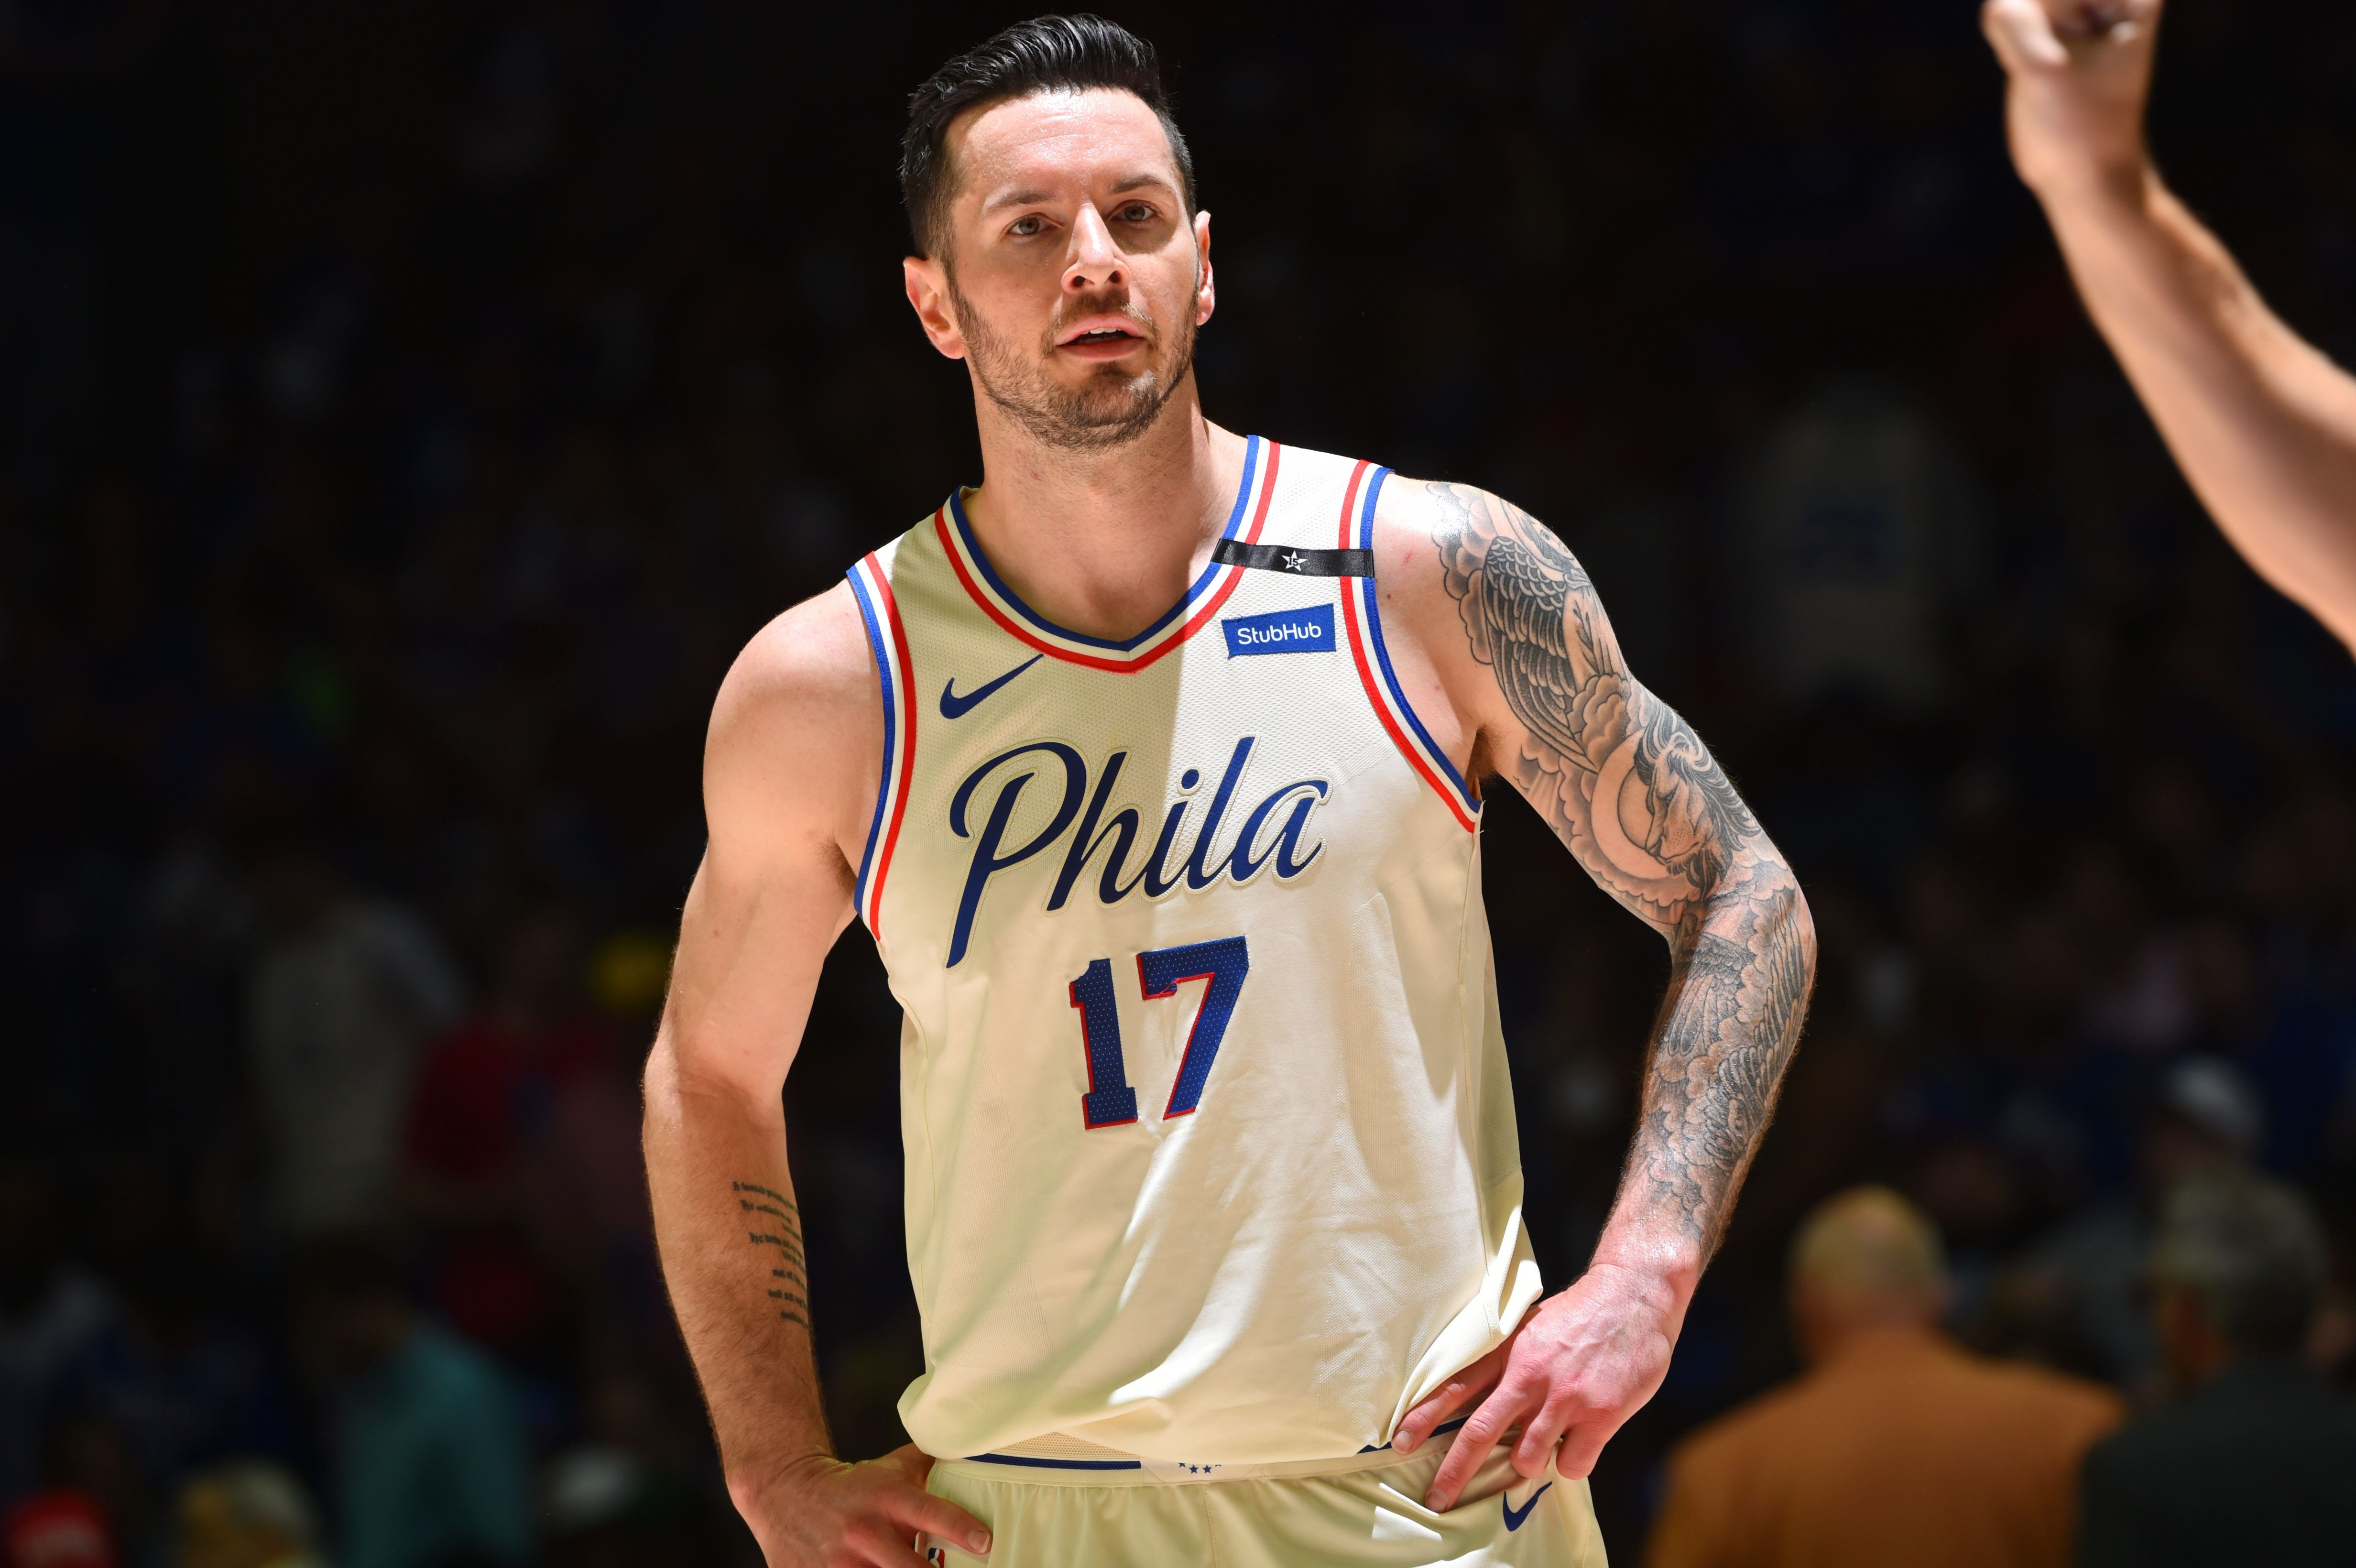 Philadelphia 76ers player J.J. Redick during a game in May.